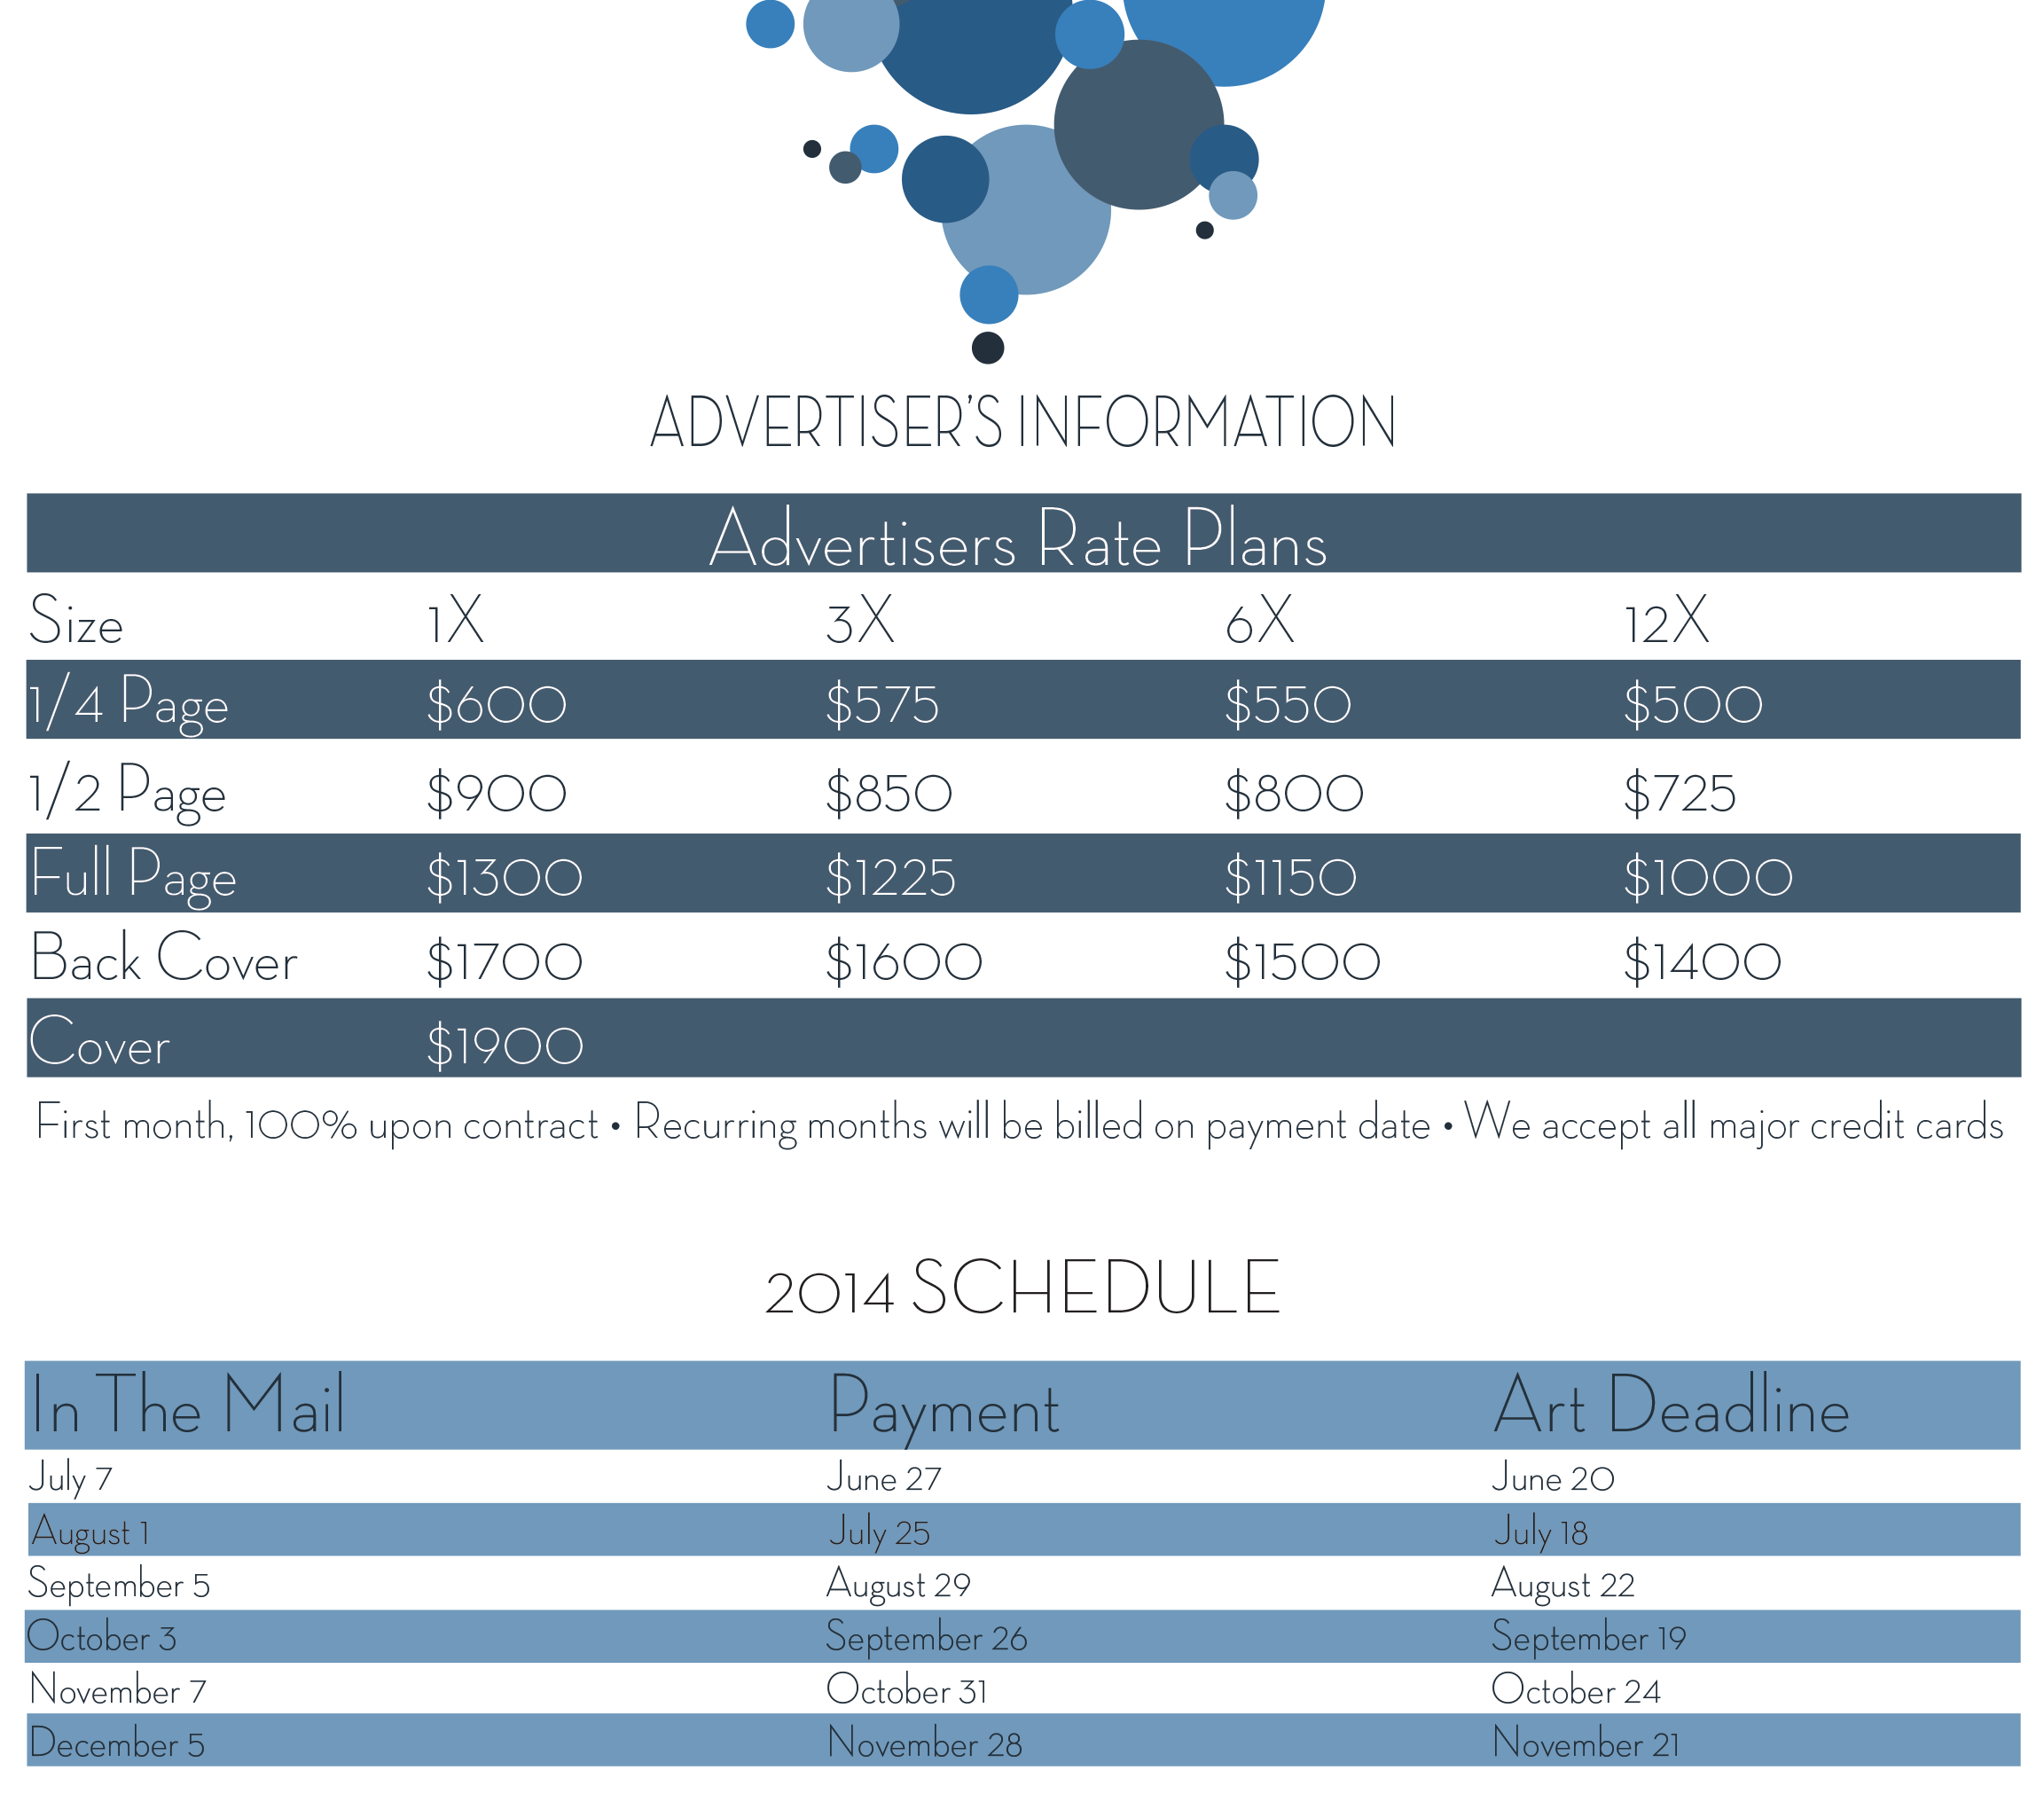 Advertisers-Information